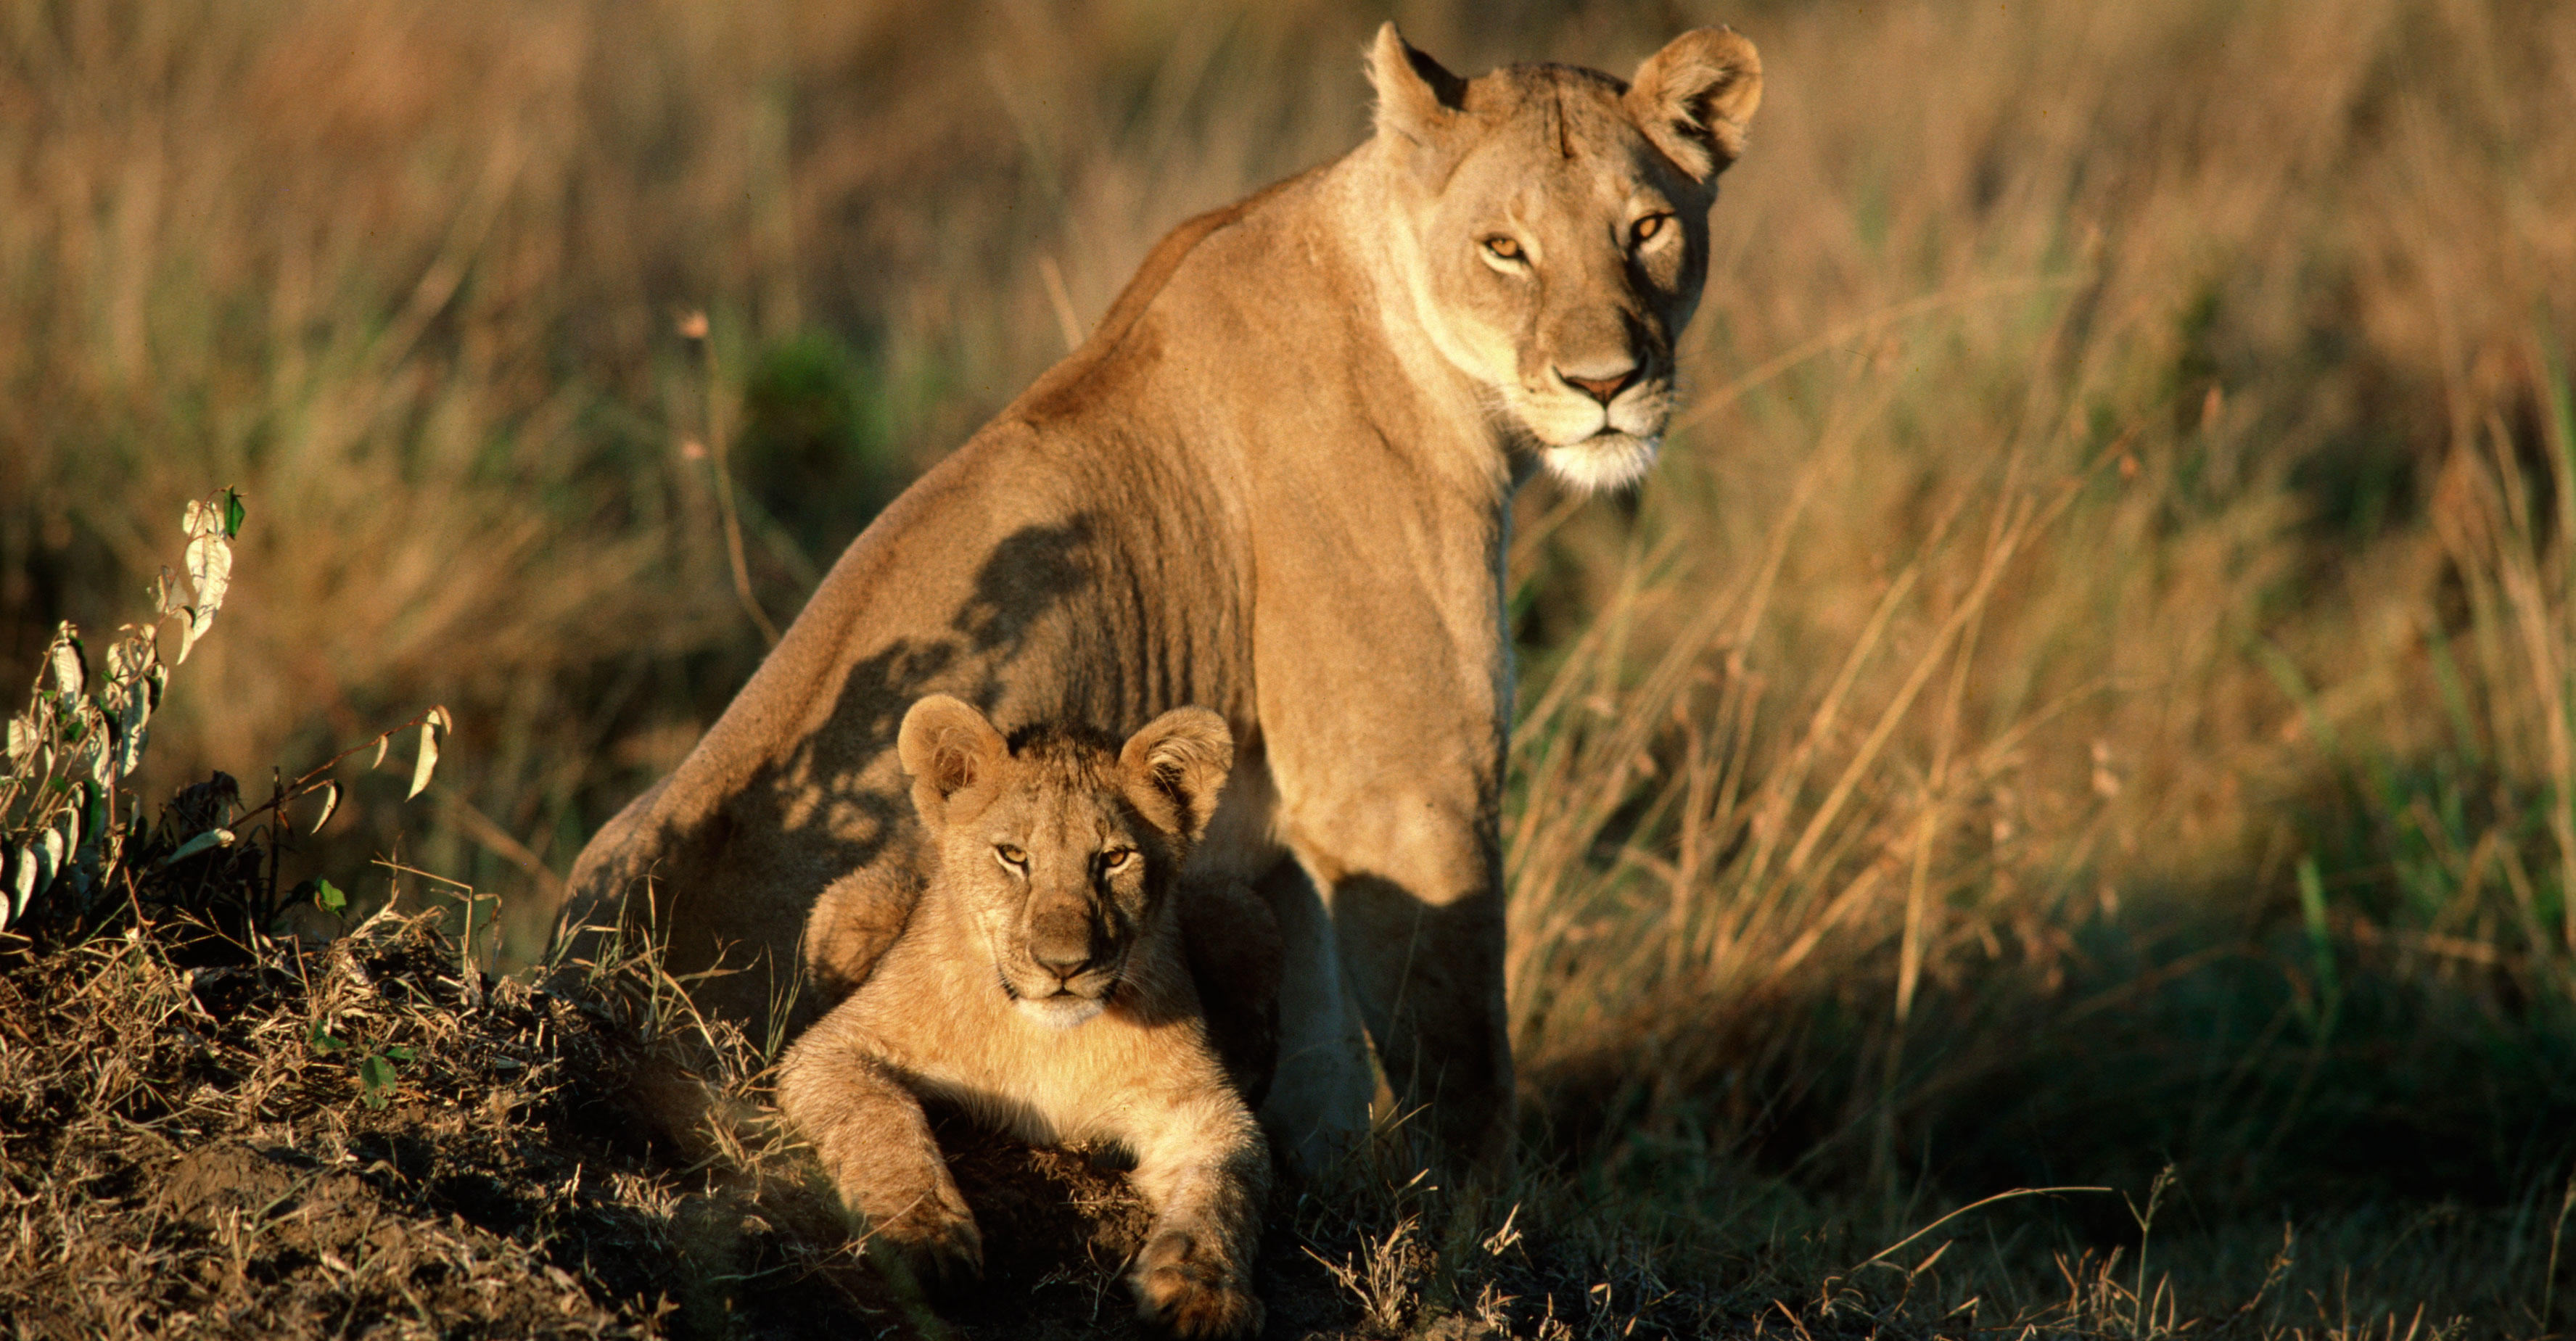 Lion cub and mother rest in grass. Panthera leo. Masai Mara Game Reserve, Kenya.